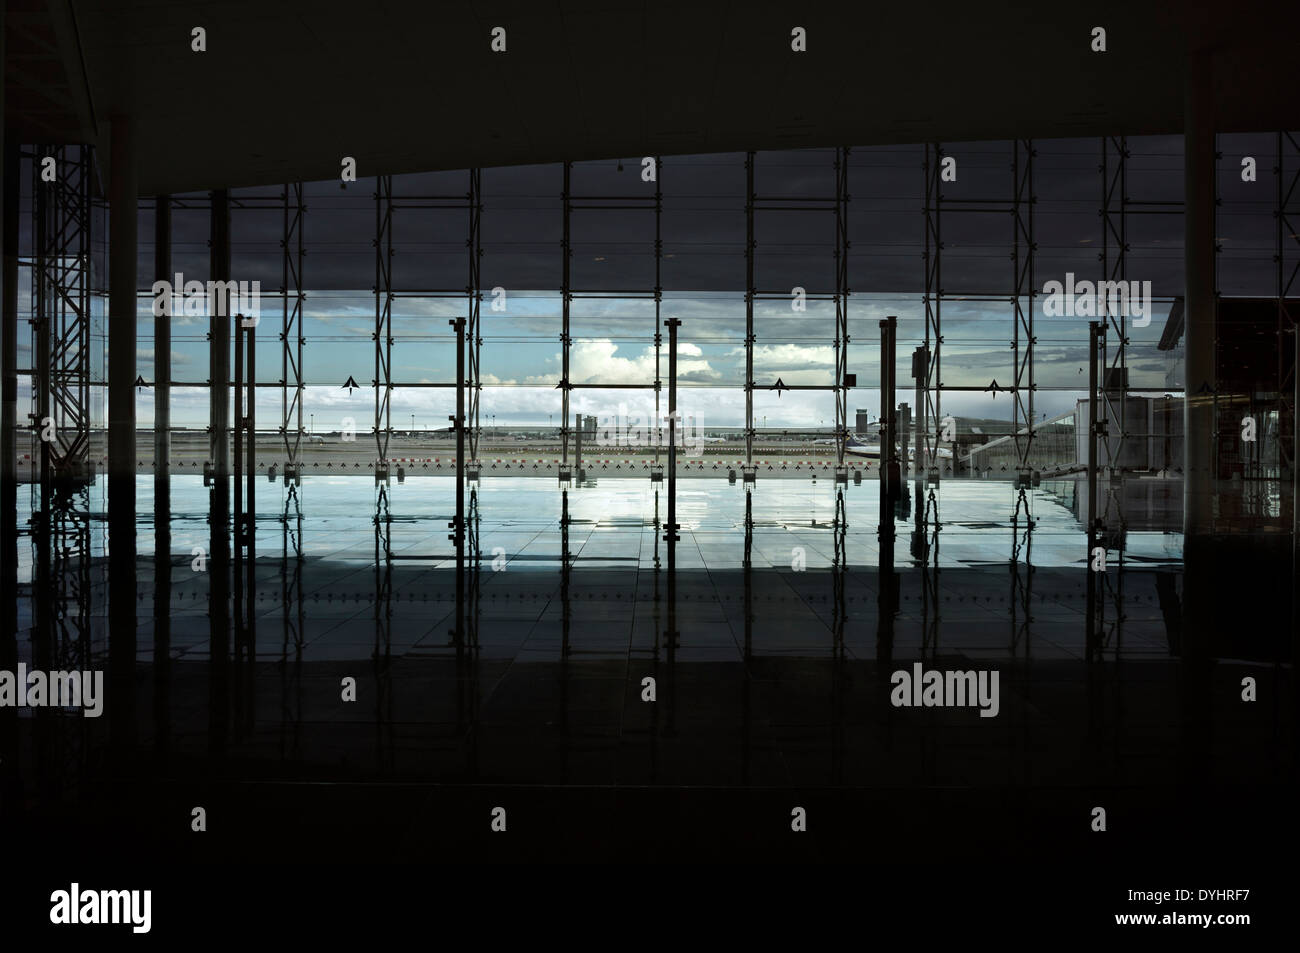 View from the pre-boarding area of El Prat Airport in Barcelona, Spain. - Stock Image